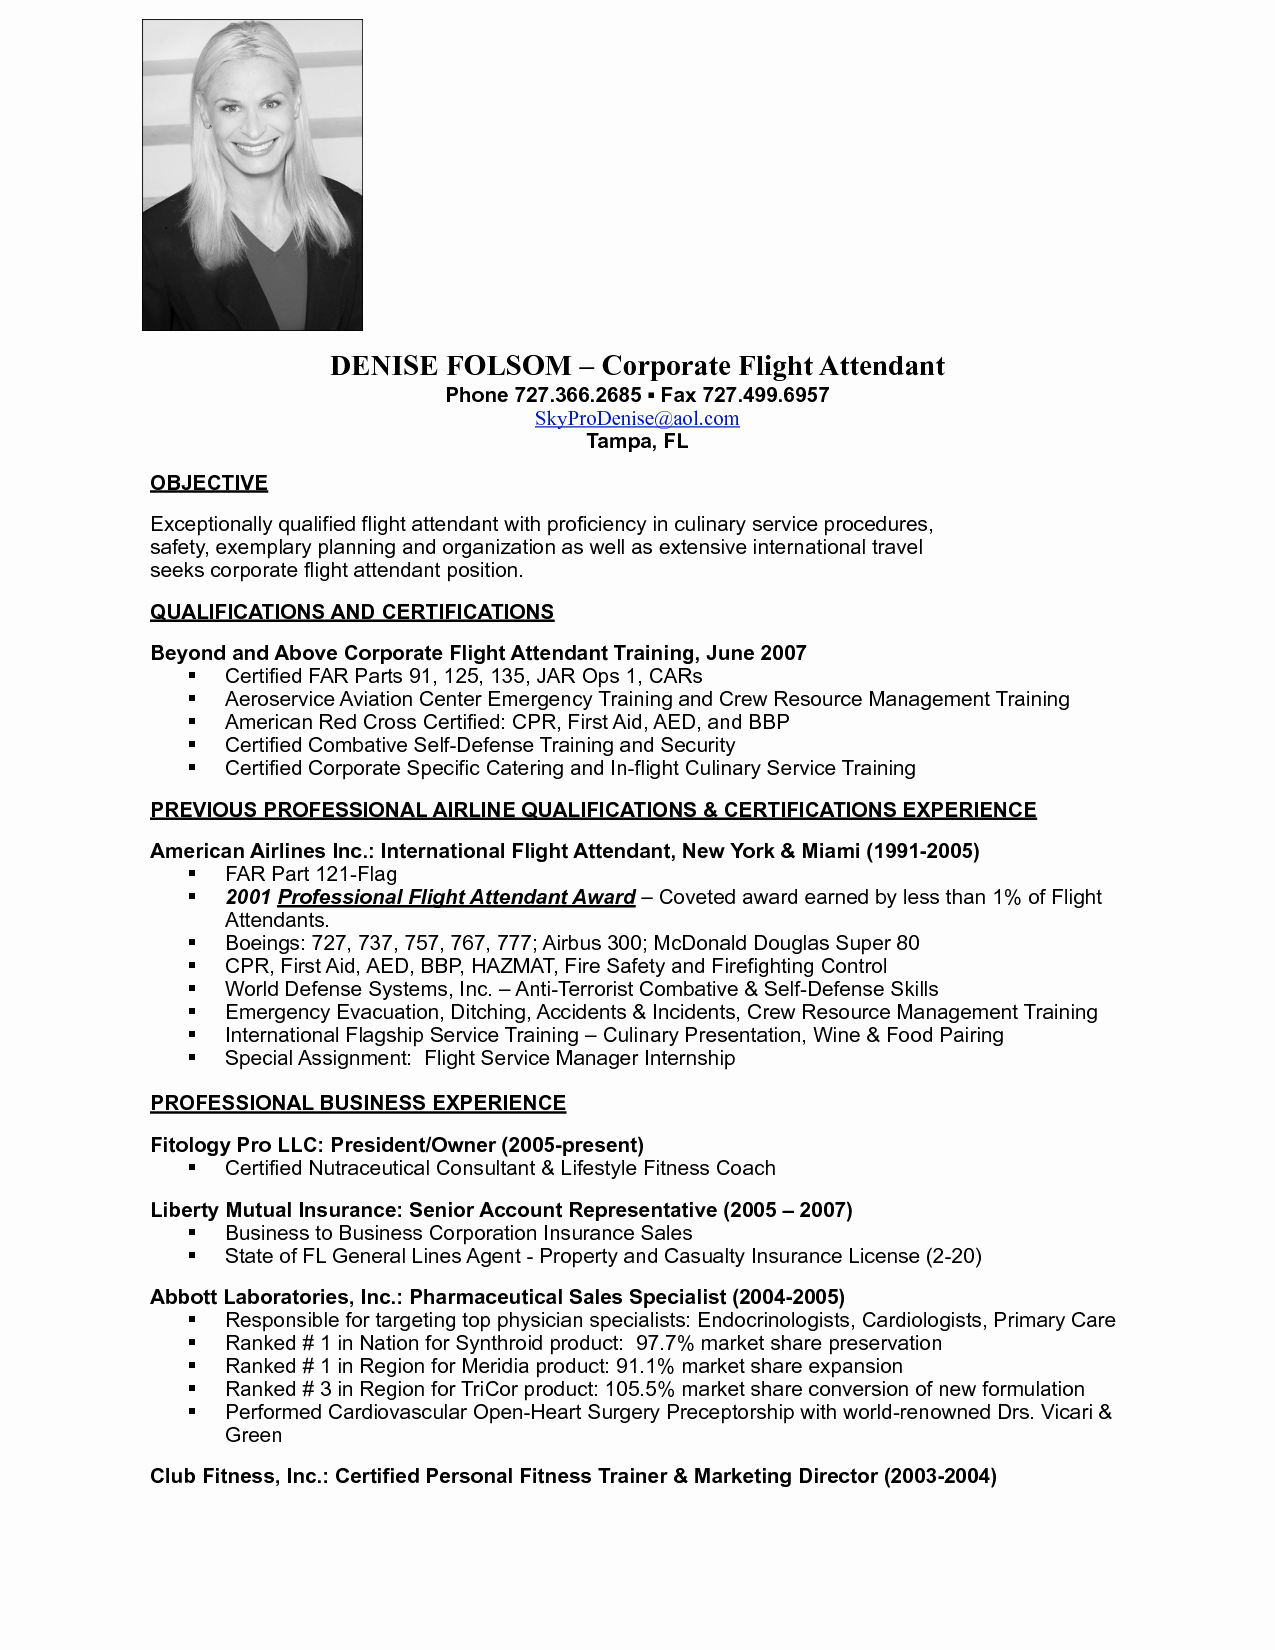 Flight attendant Resume Cover Letter Awesome 2016 2017 Resume Flight attendant Writing Tips